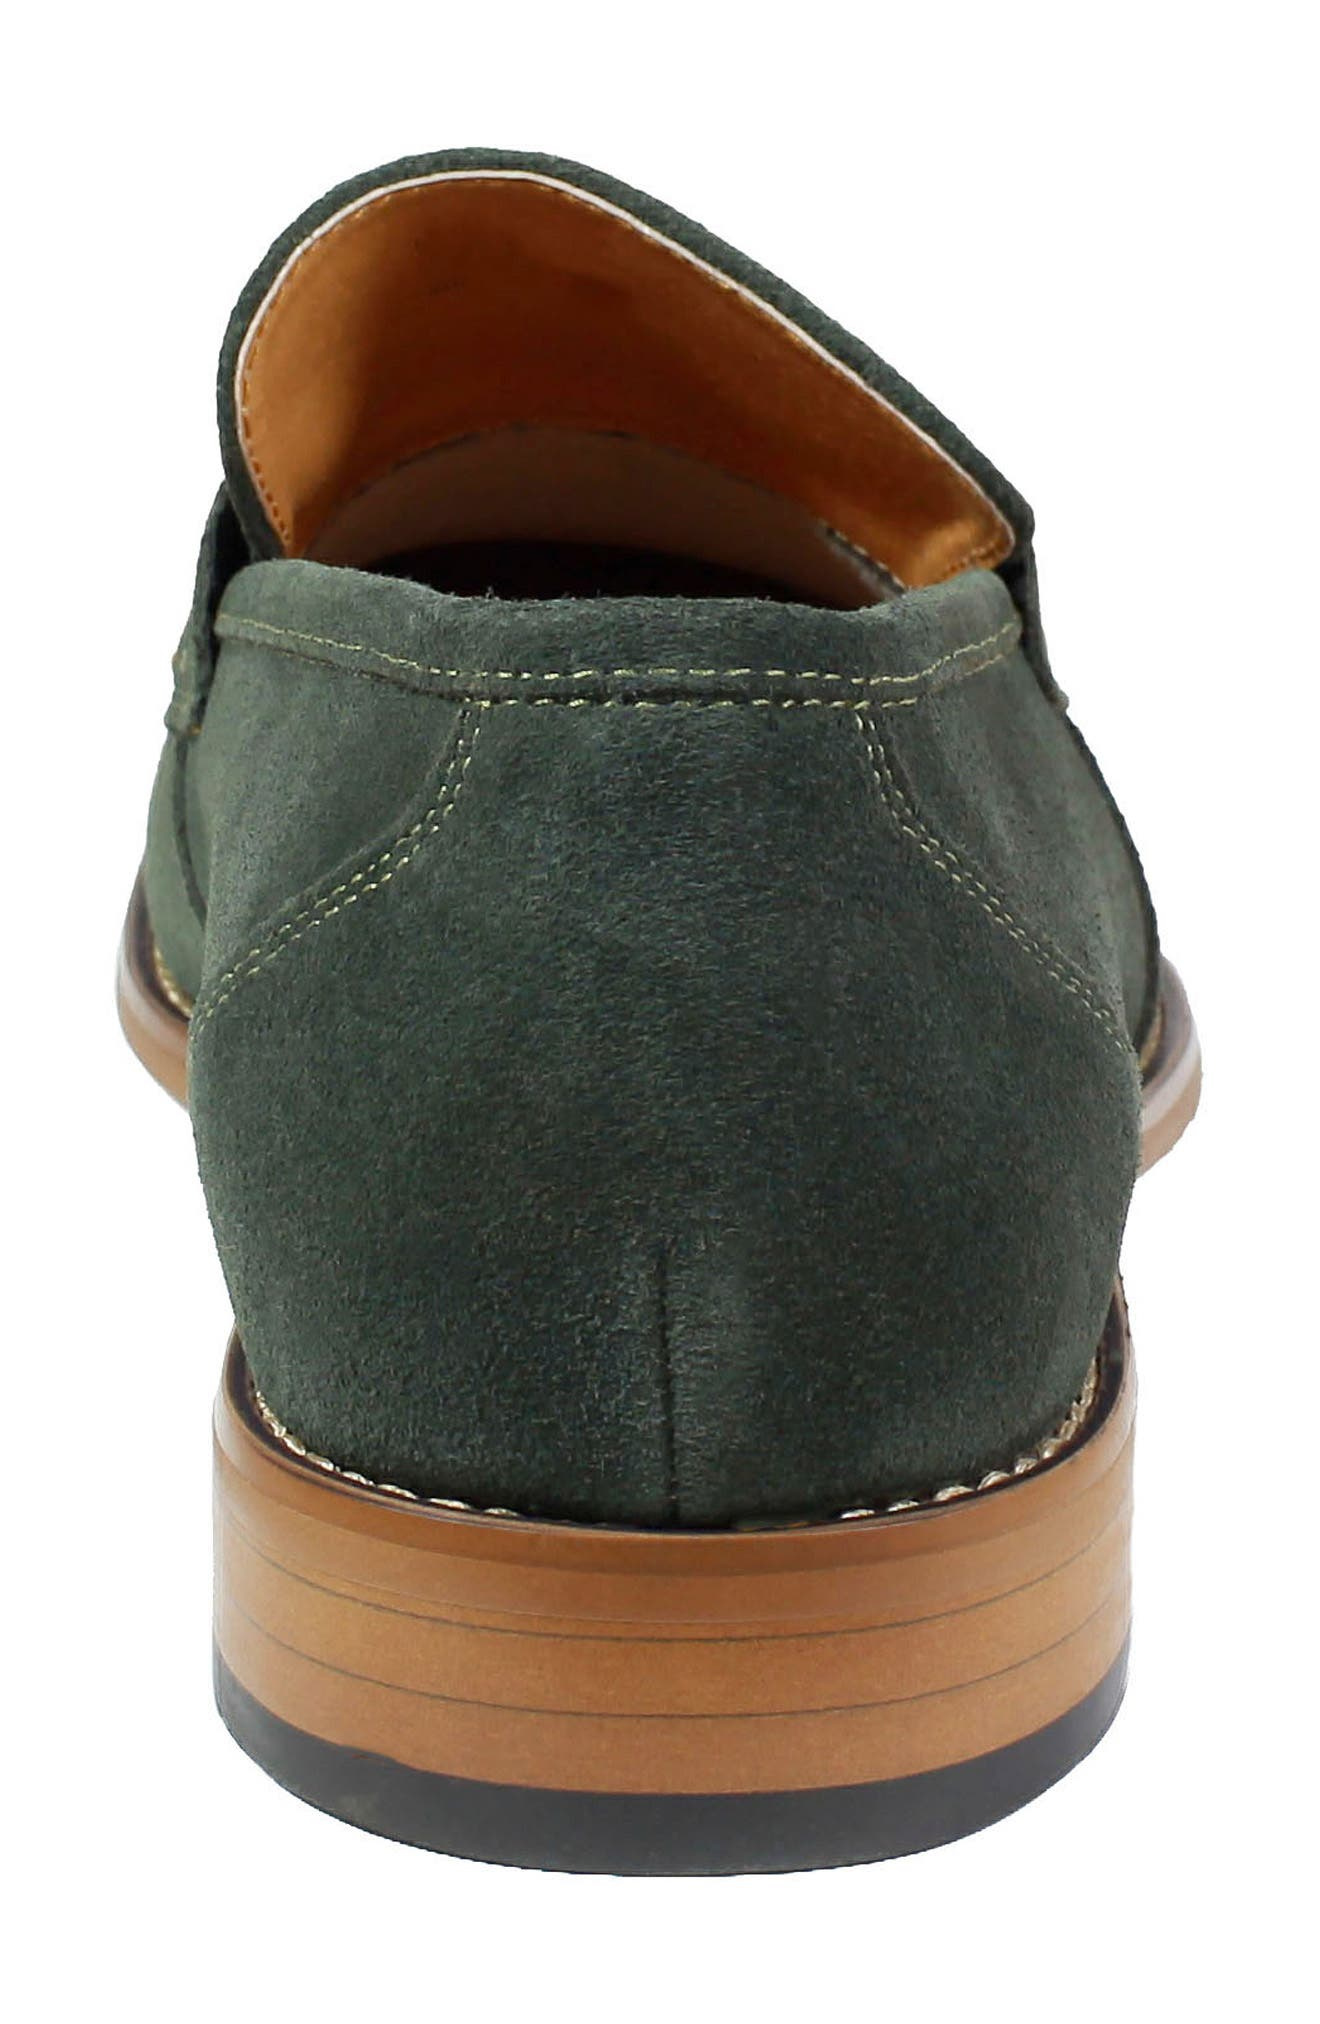 Colfax Apron Toe Penny Loafer,                             Alternate thumbnail 8, color,                             DARK GREEN SUEDE